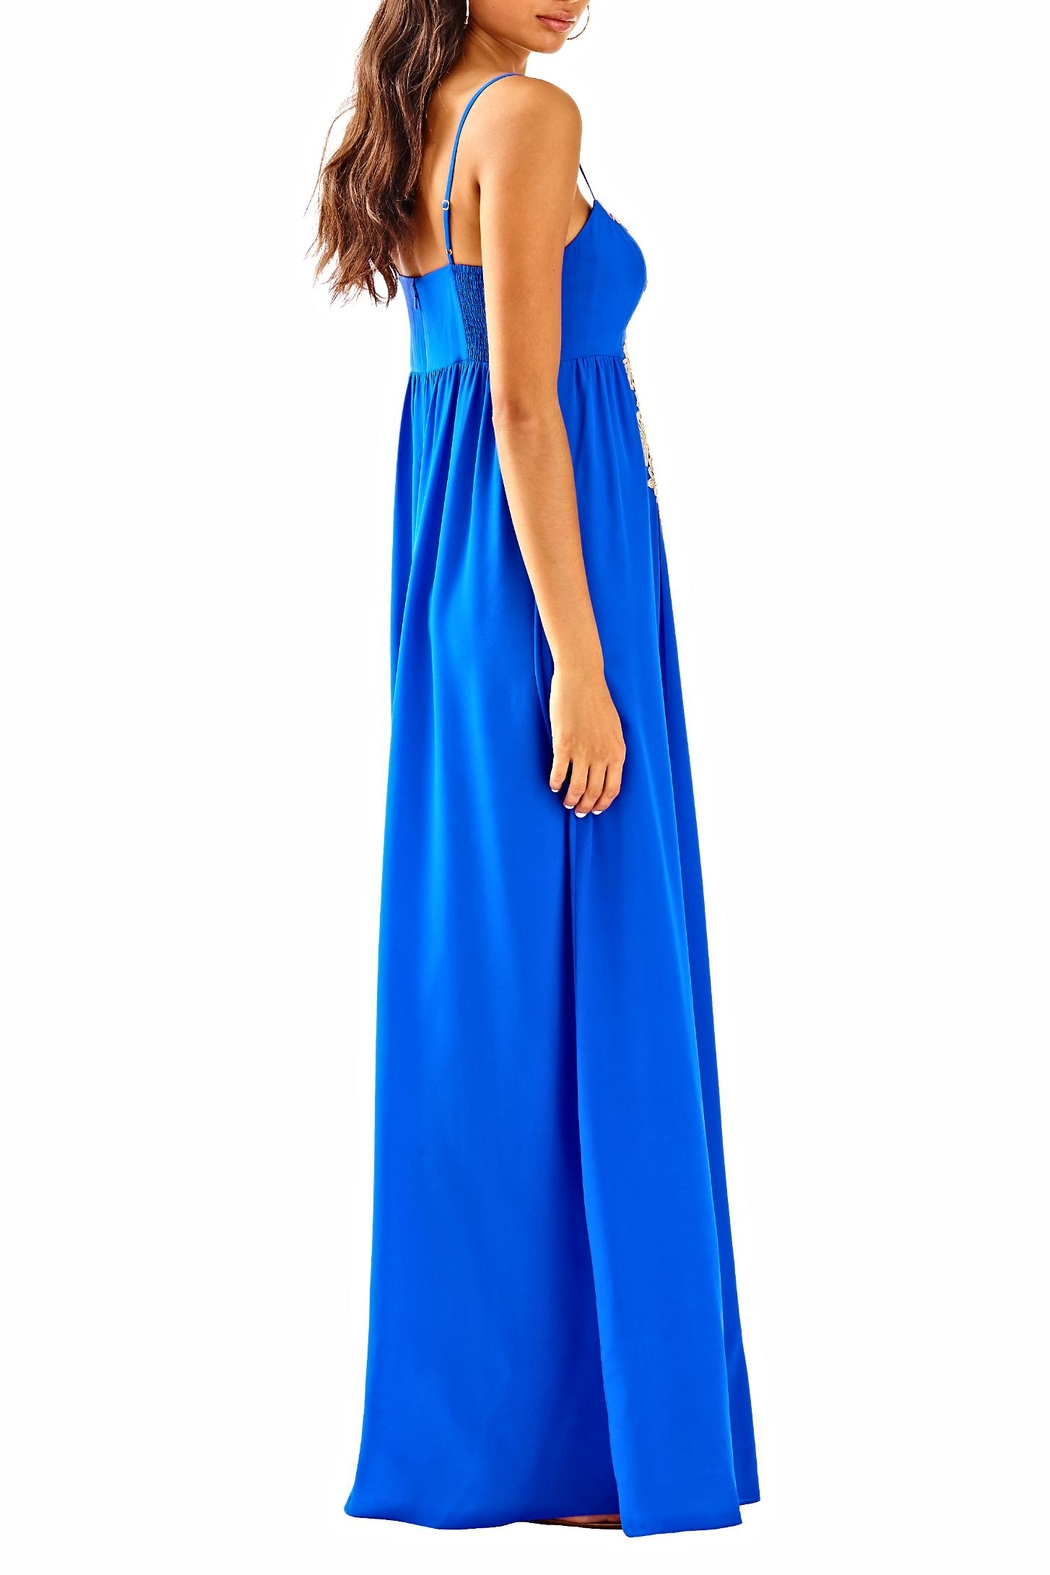 Lilly Pulitzer Kelsea Silk Dress - Side Cropped Image